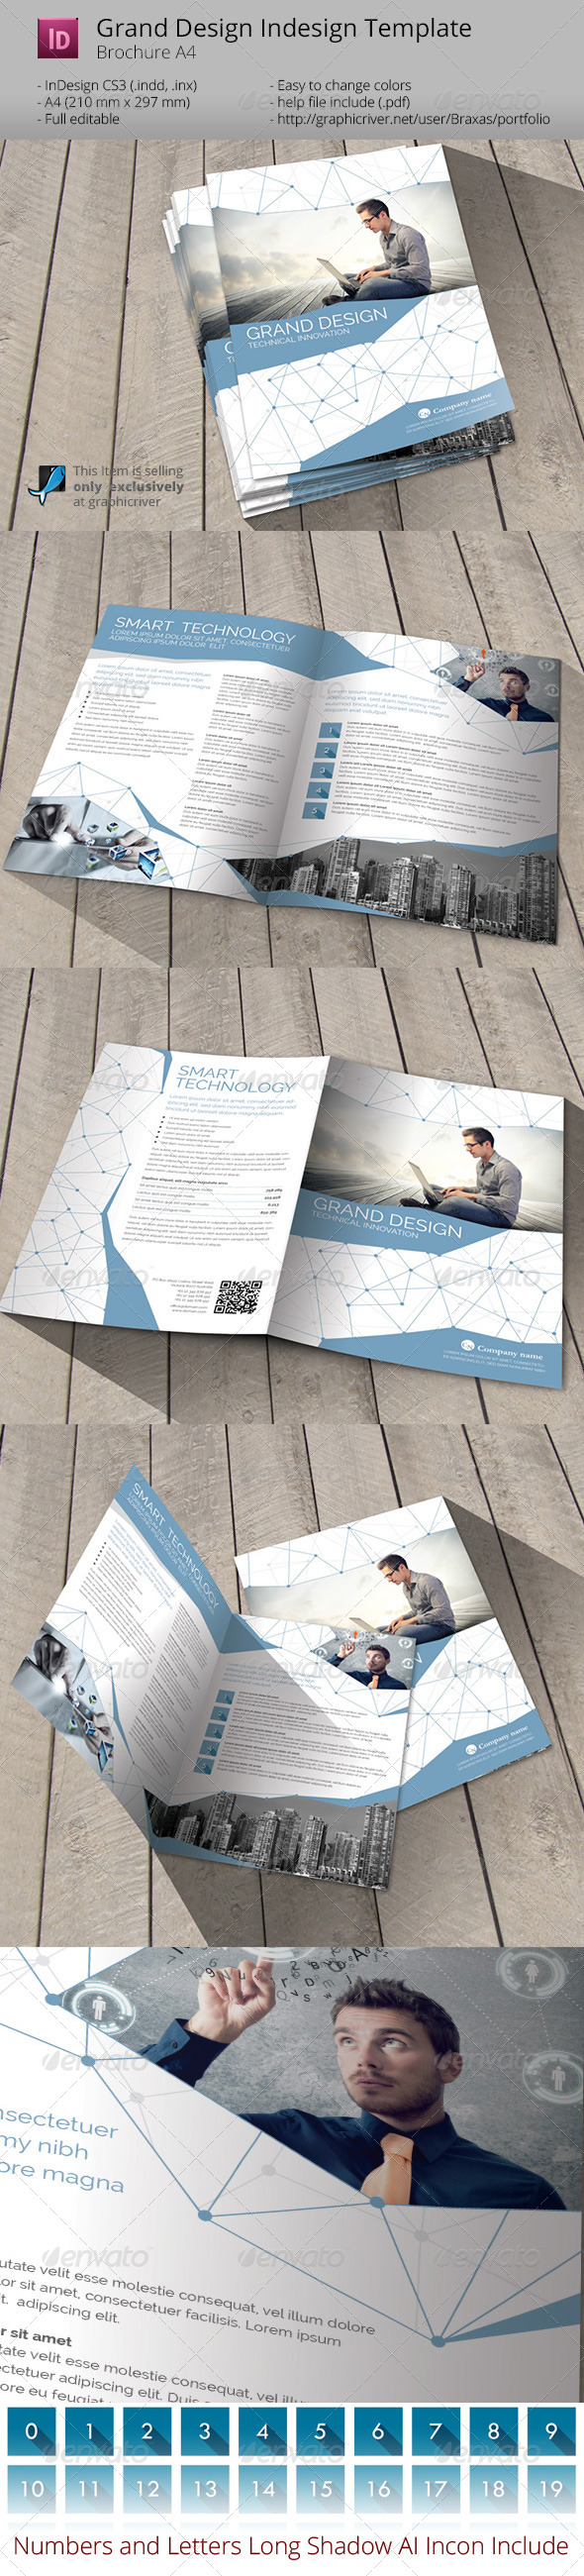 GraphicRiver Grand Design Smart Technology Indesign Template 6766990